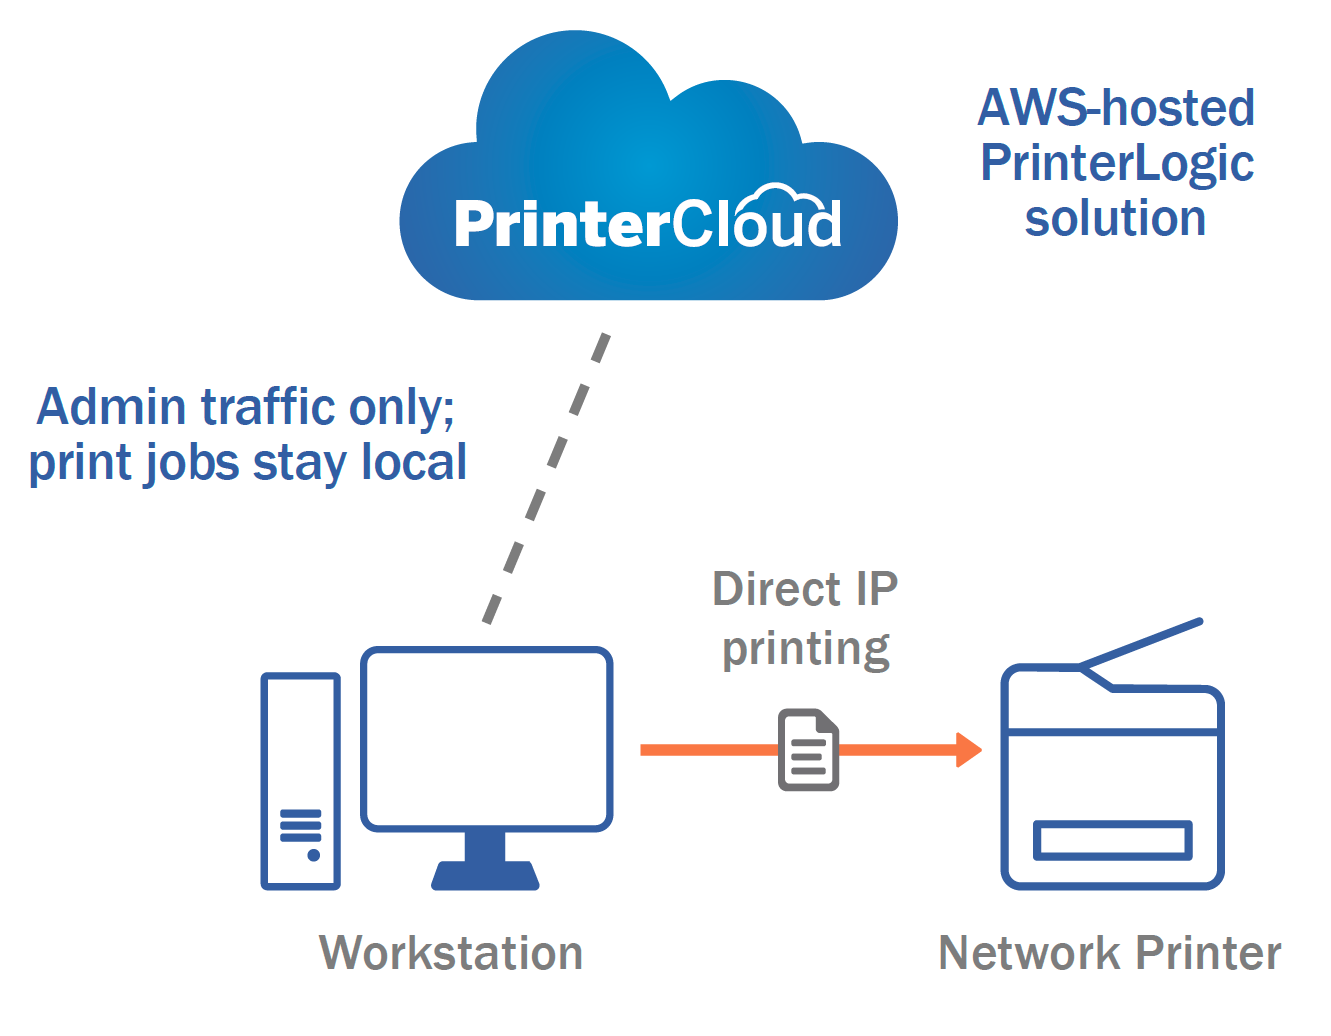 AWS-hosted PrinterLogic Solution